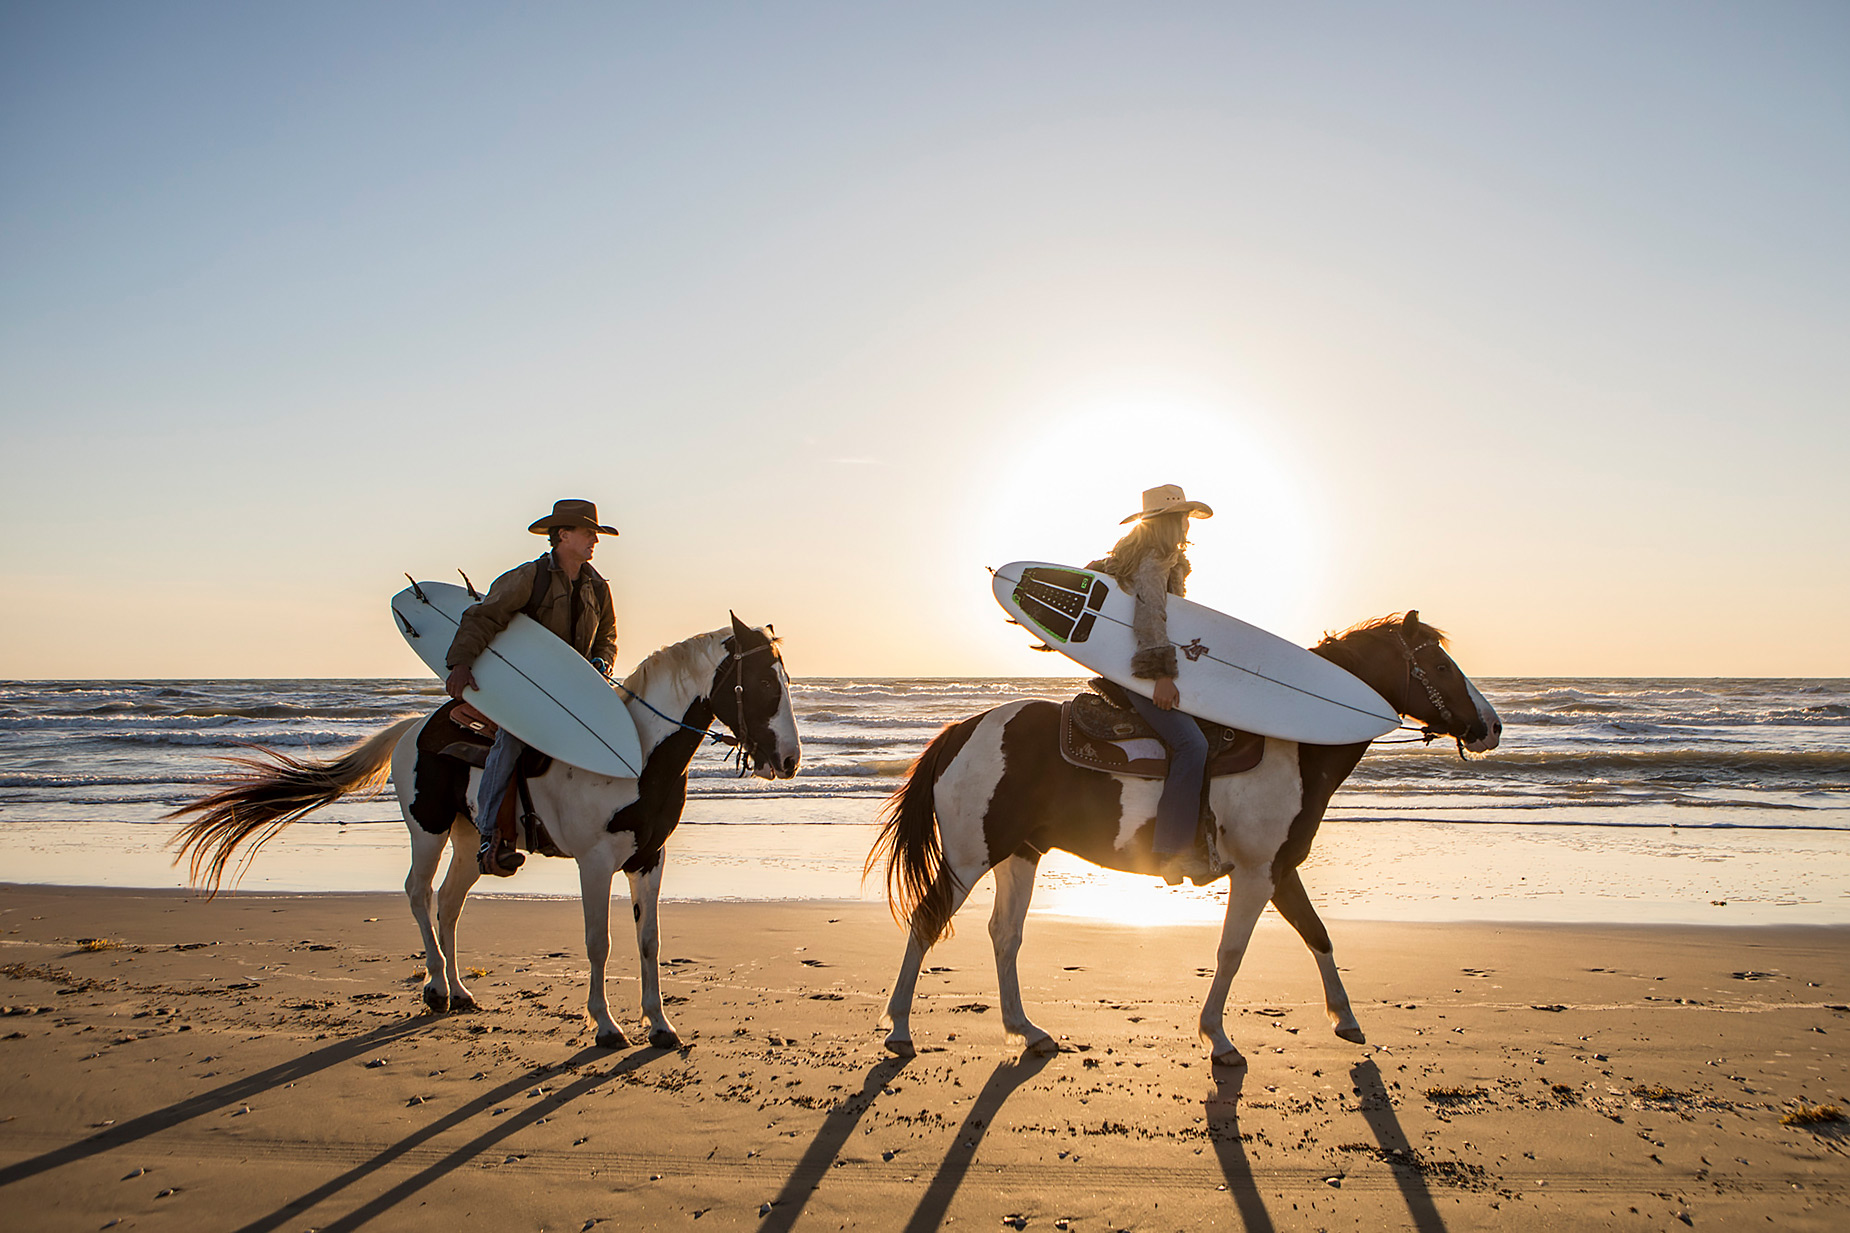 Texas surfers on horseback on the beach at sunrise